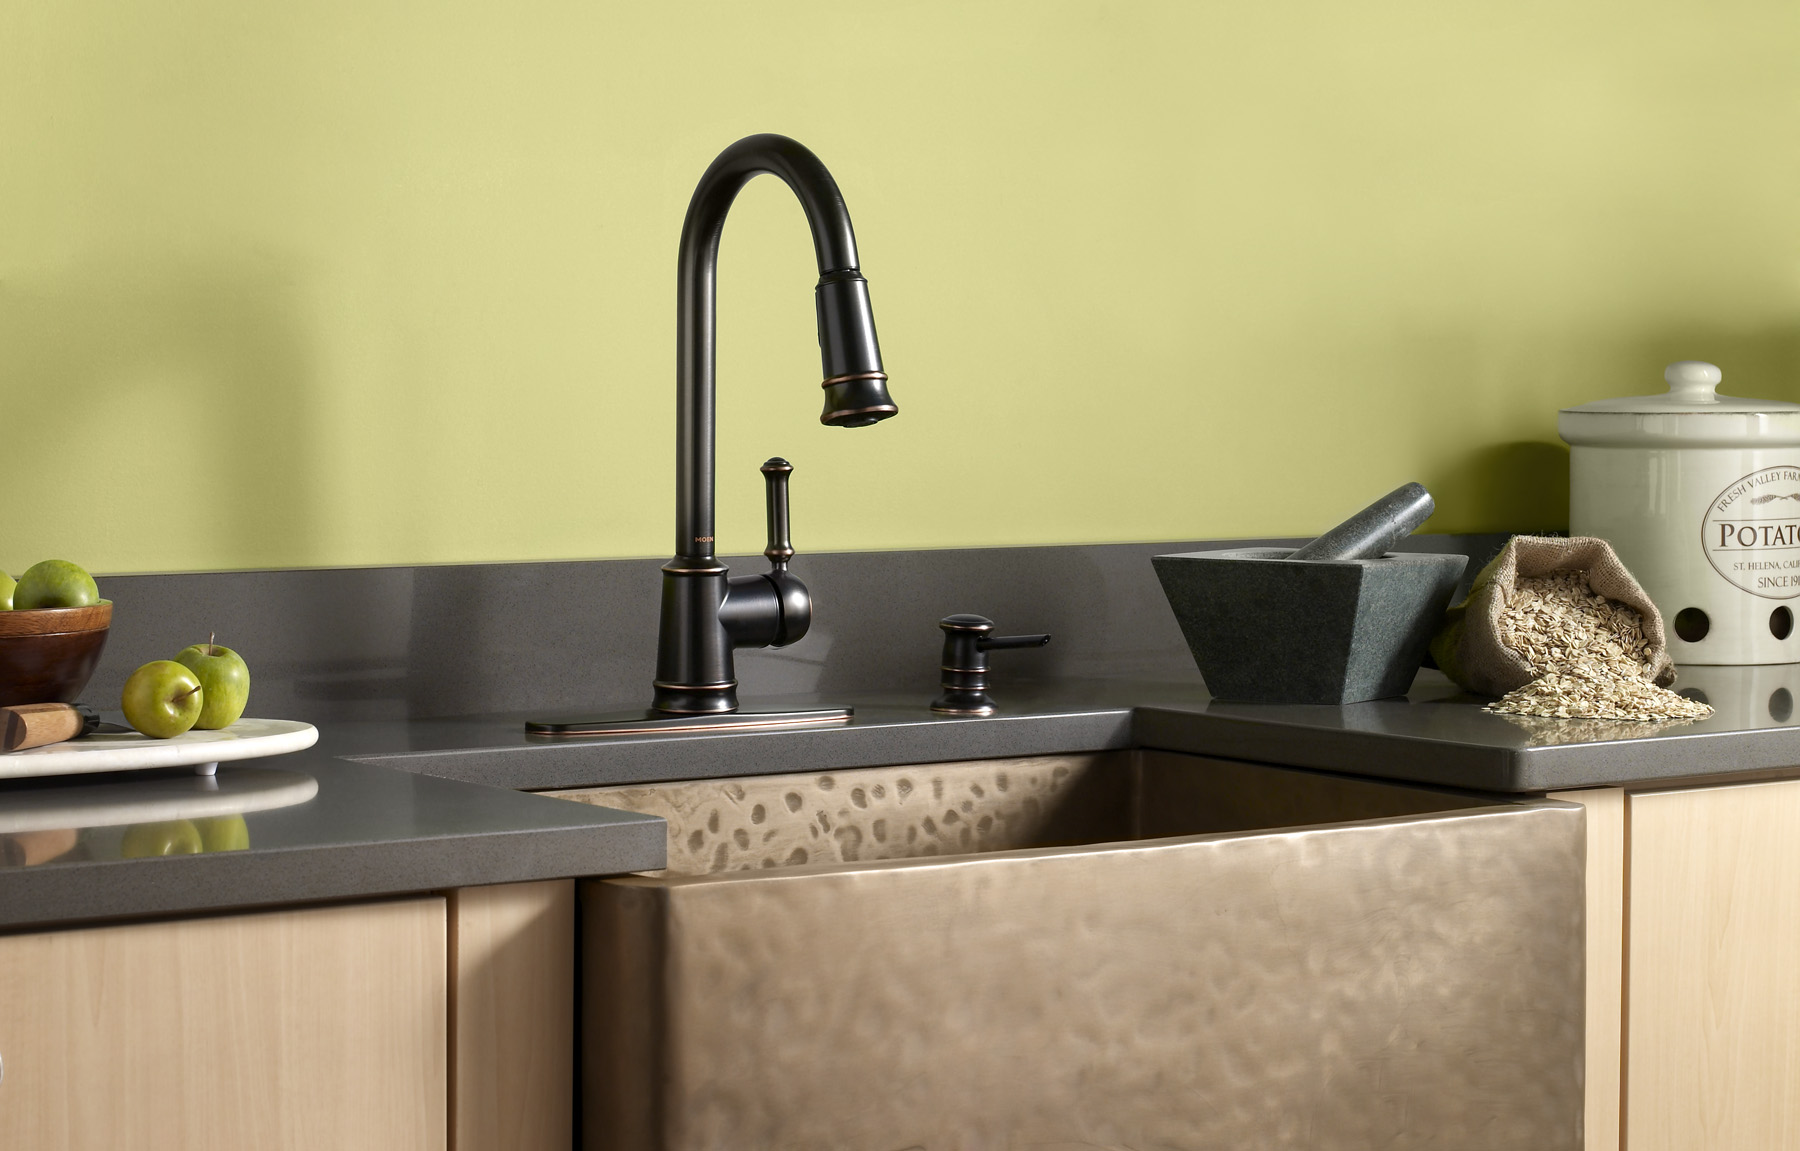 Remove moen kitchen faucet 7400 rings at olympics